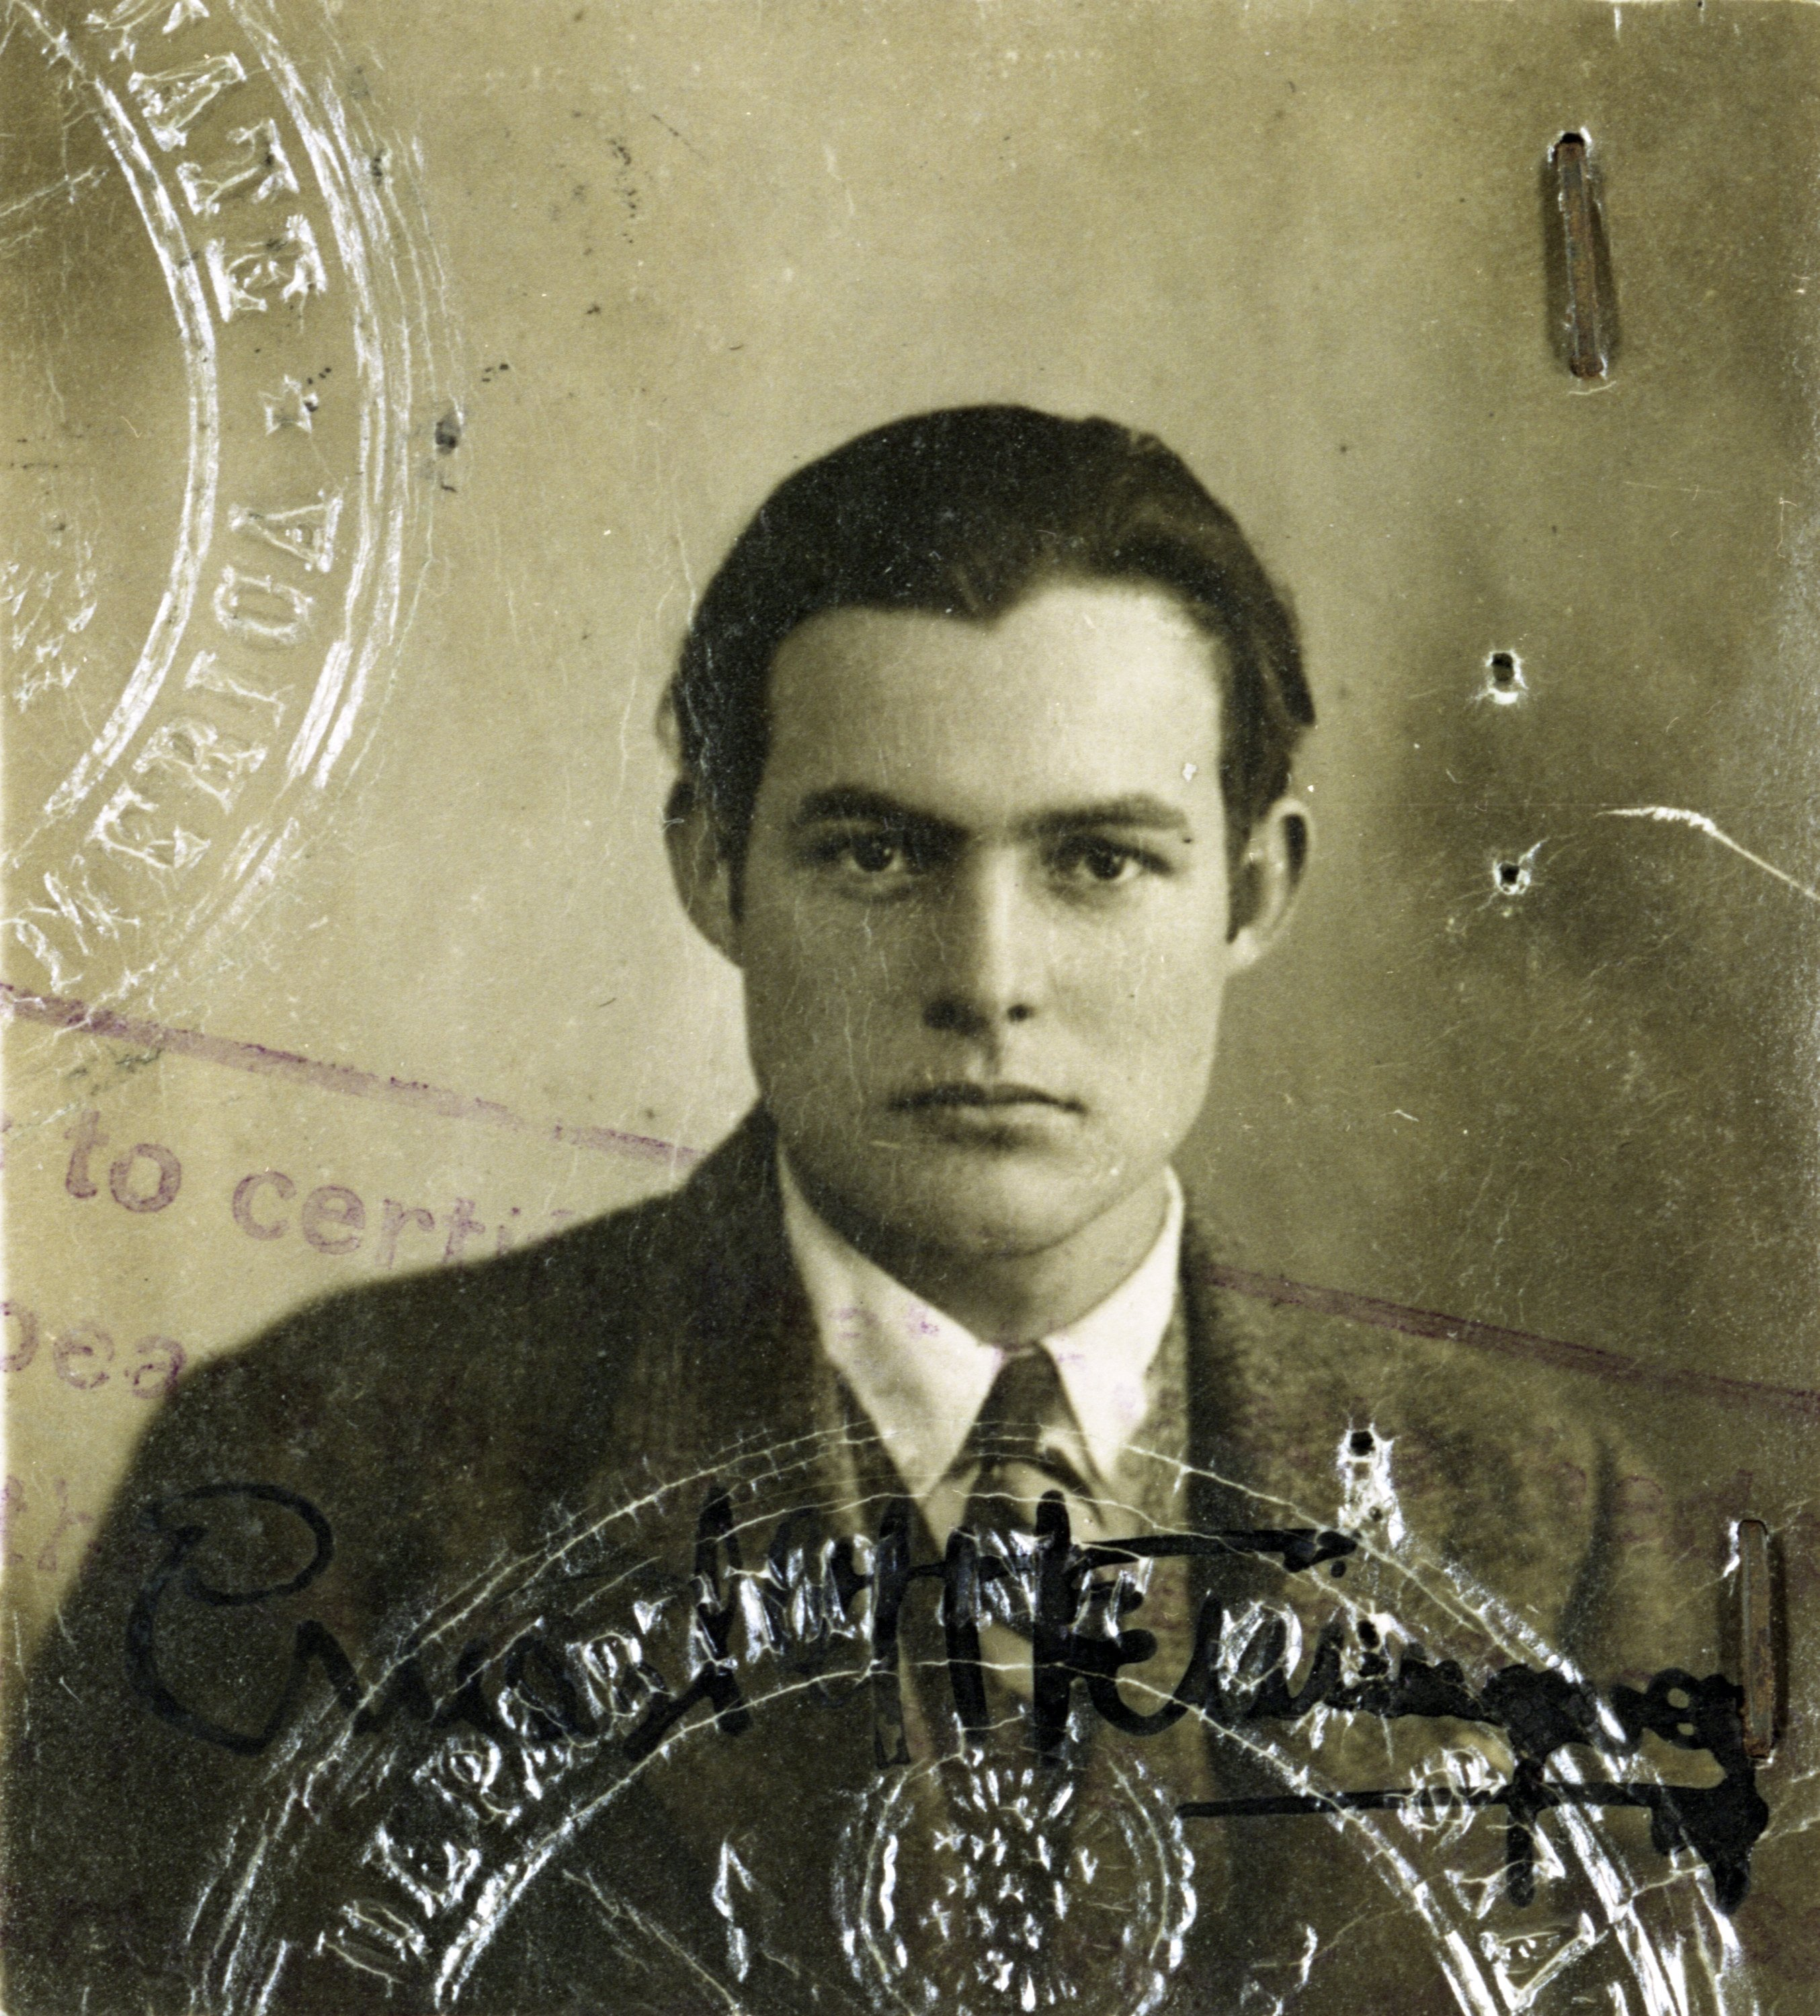 This 1920s photo provided by the John F. Kennedy Library Foundation shows Ernest Hemingway in his U.S. passport photo. (AP Photo)